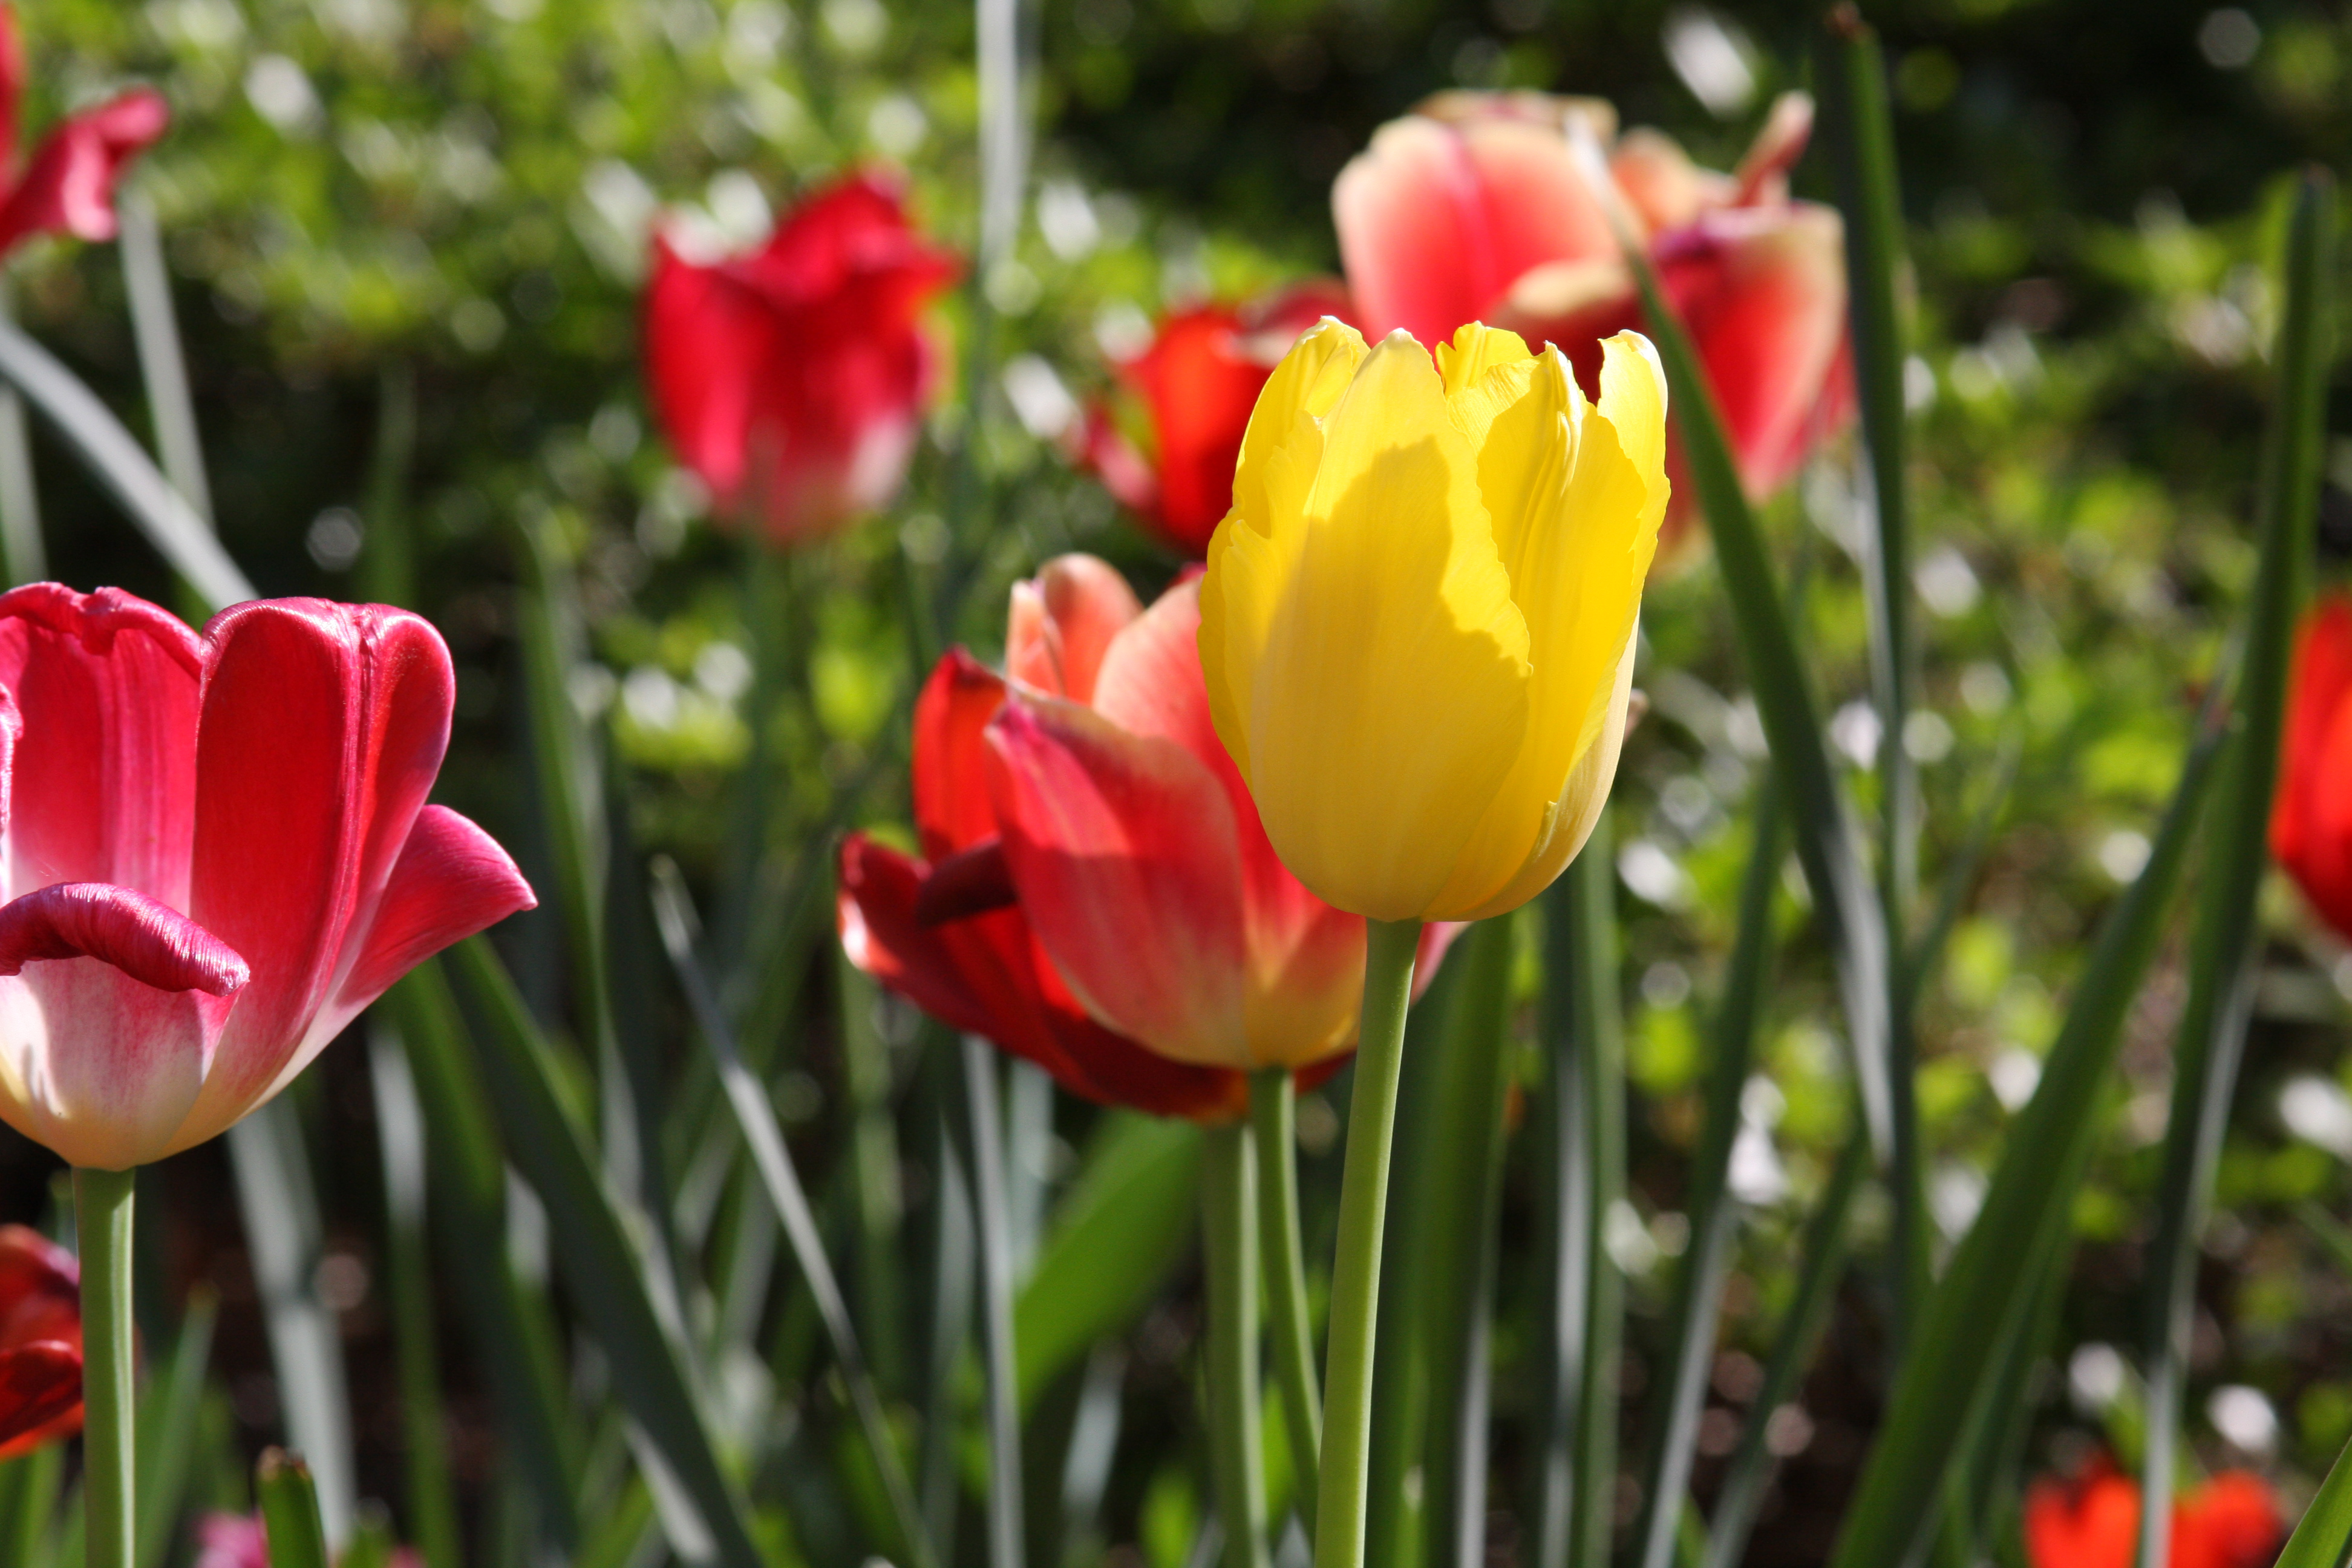 Red and yellow tulips brighten a flower bed.